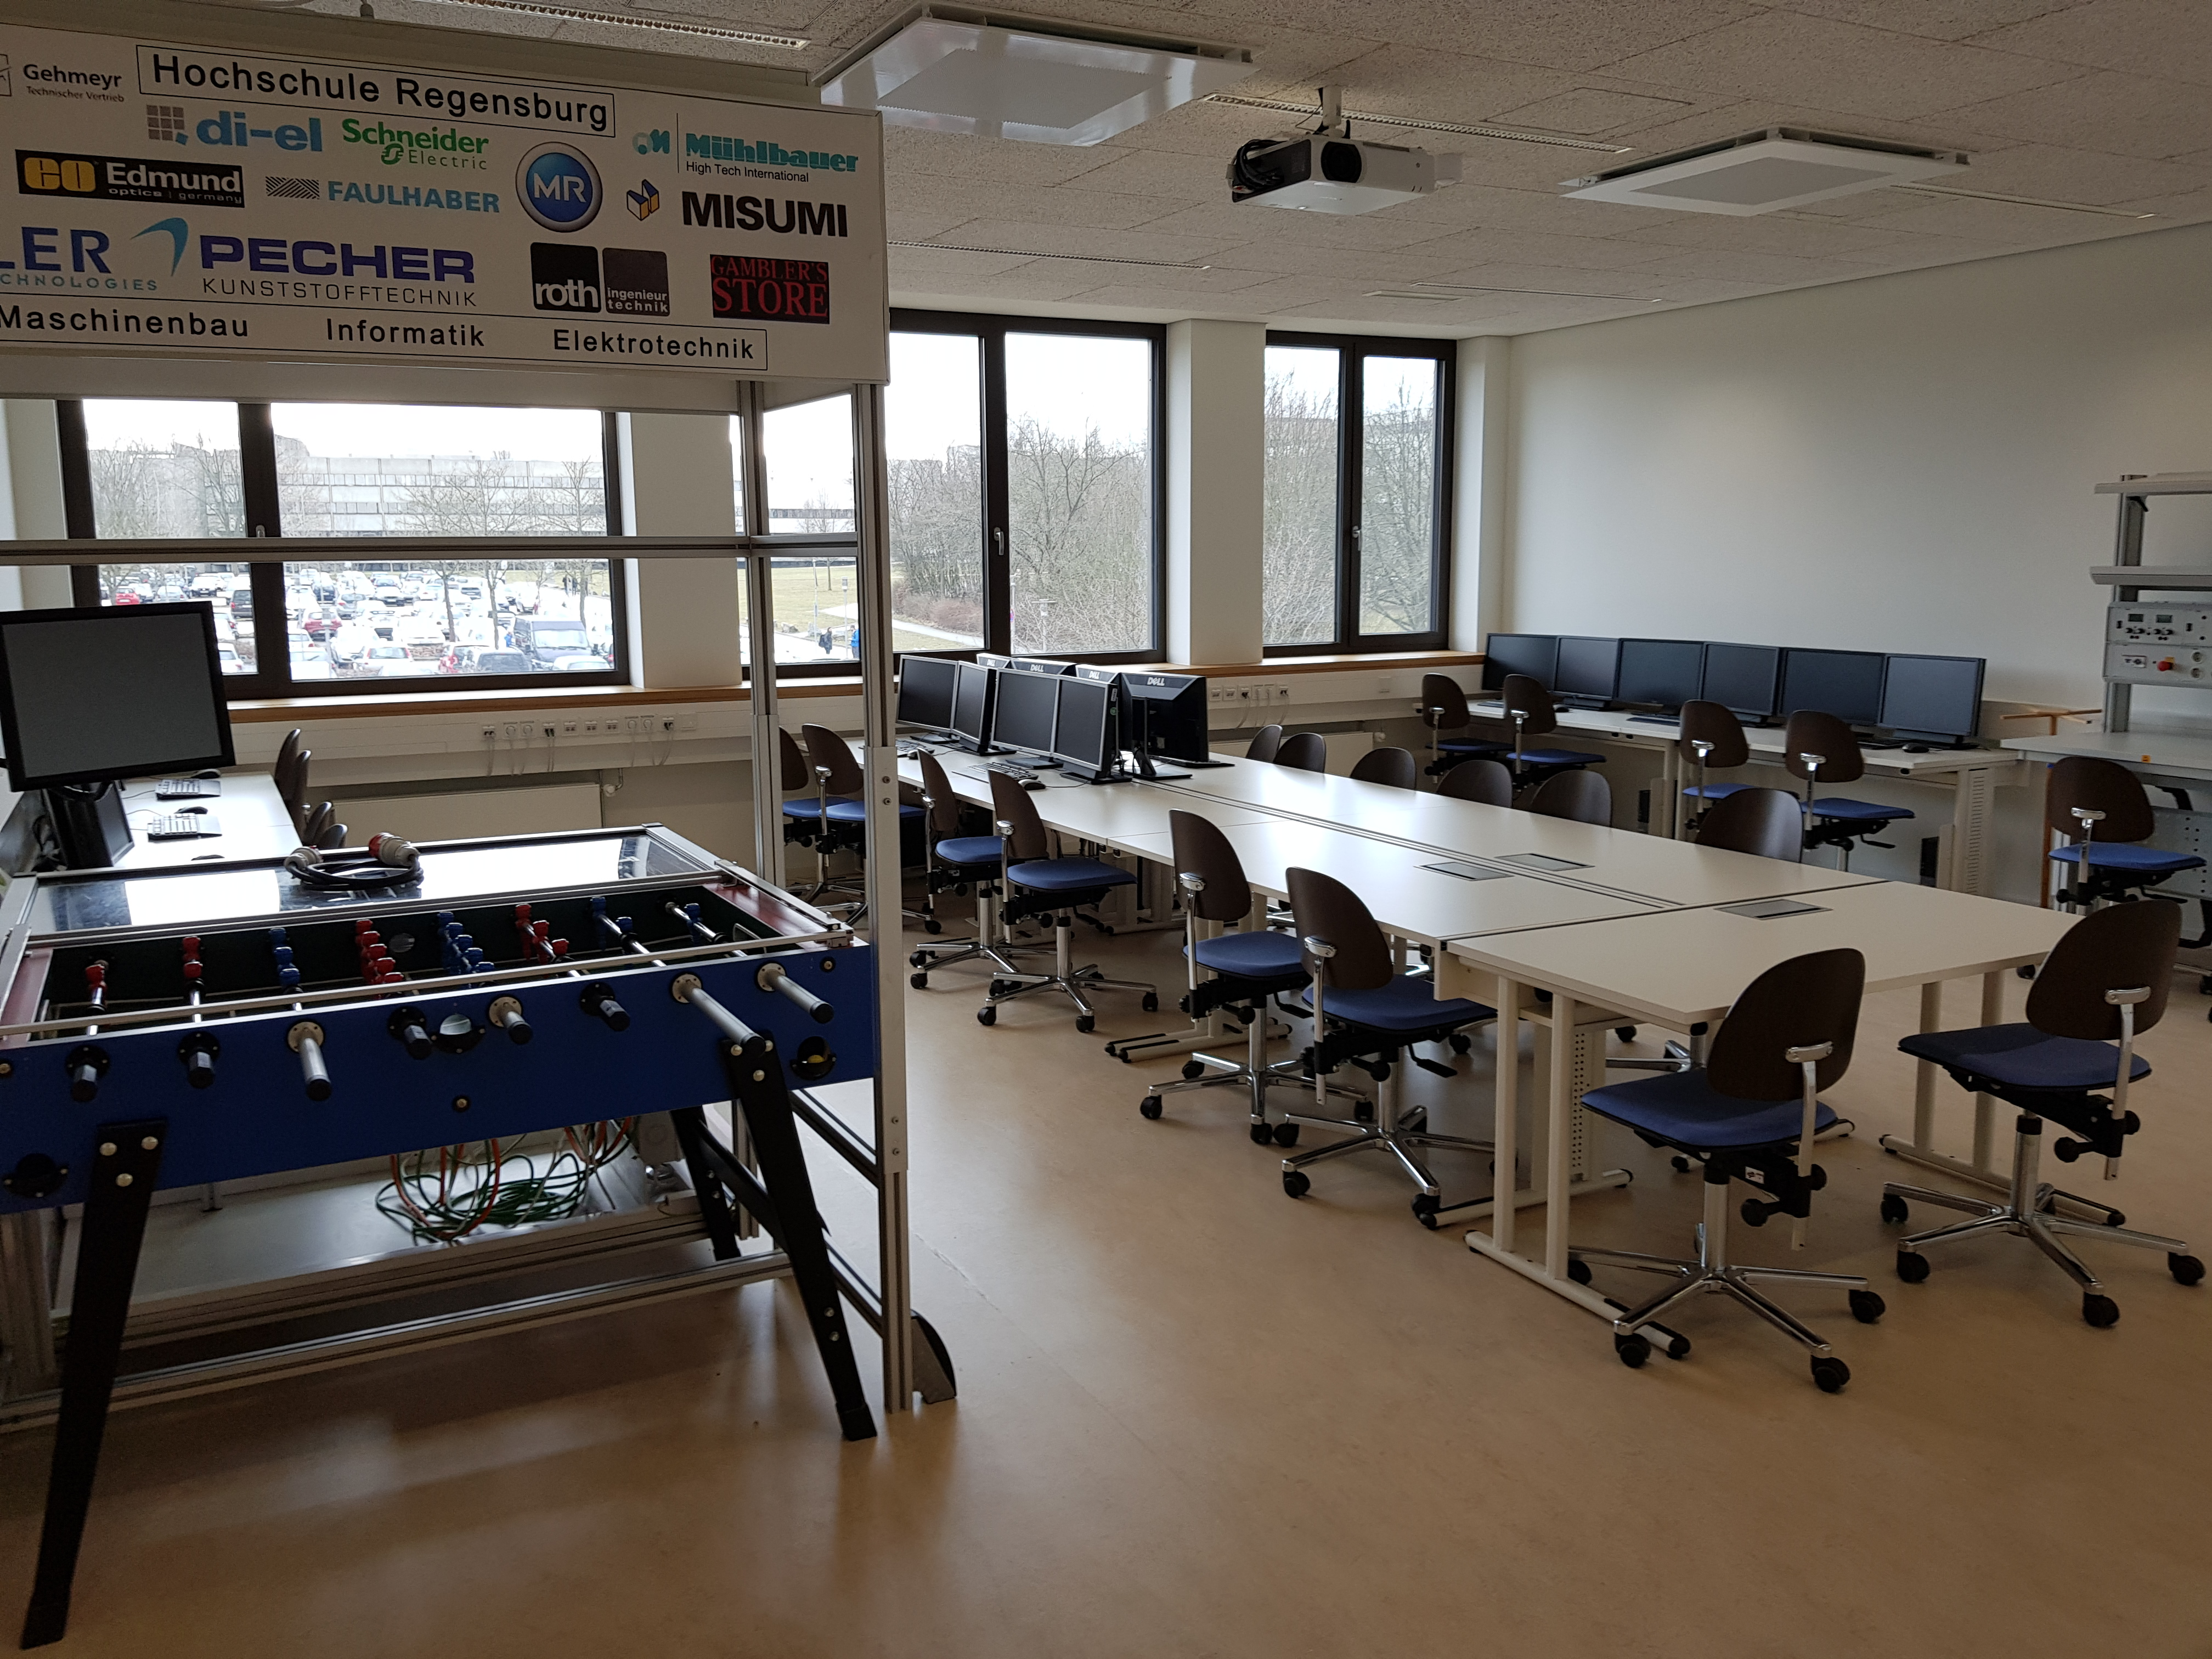 Technical Informatics Laboratory